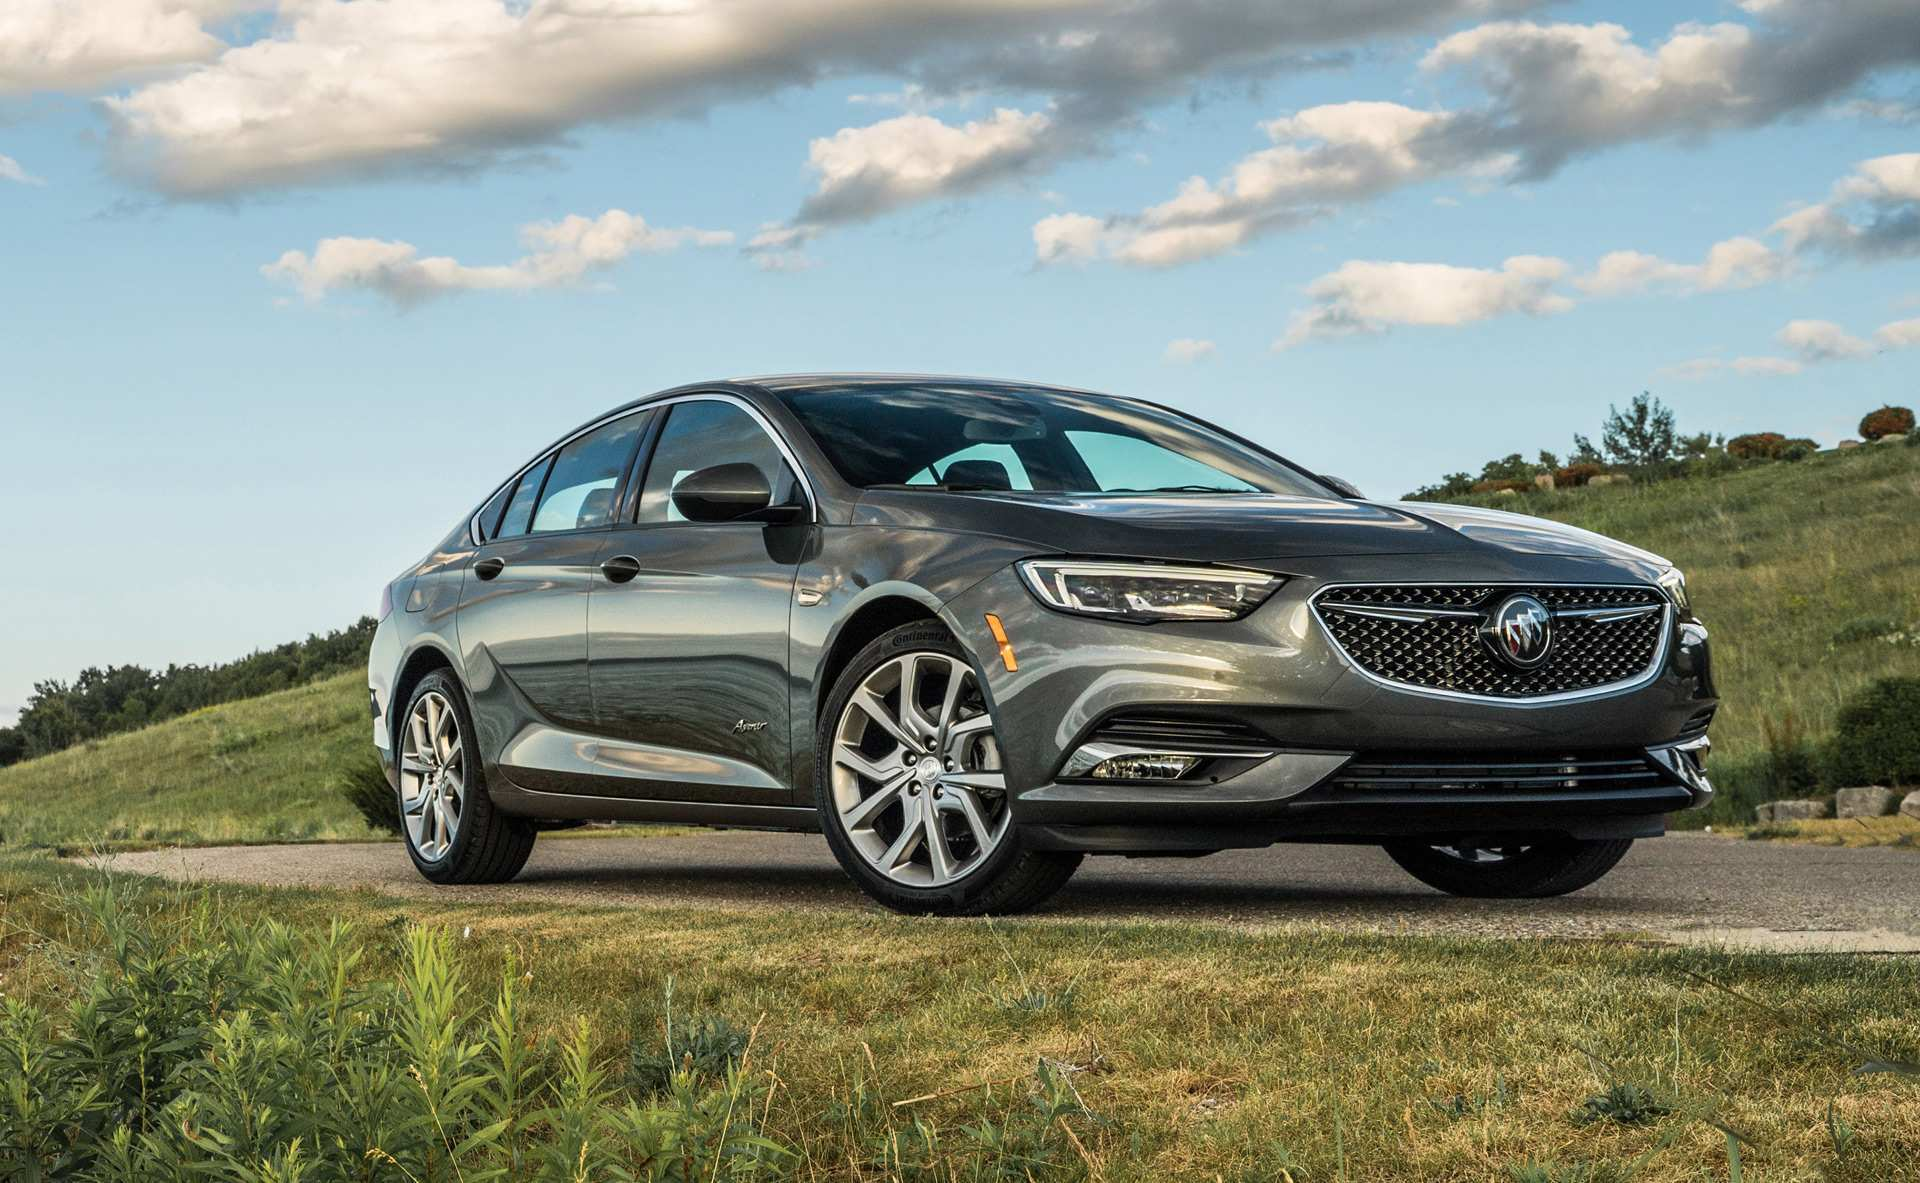 78 Best Review 2019 Buick Sedan Style by 2019 Buick Sedan